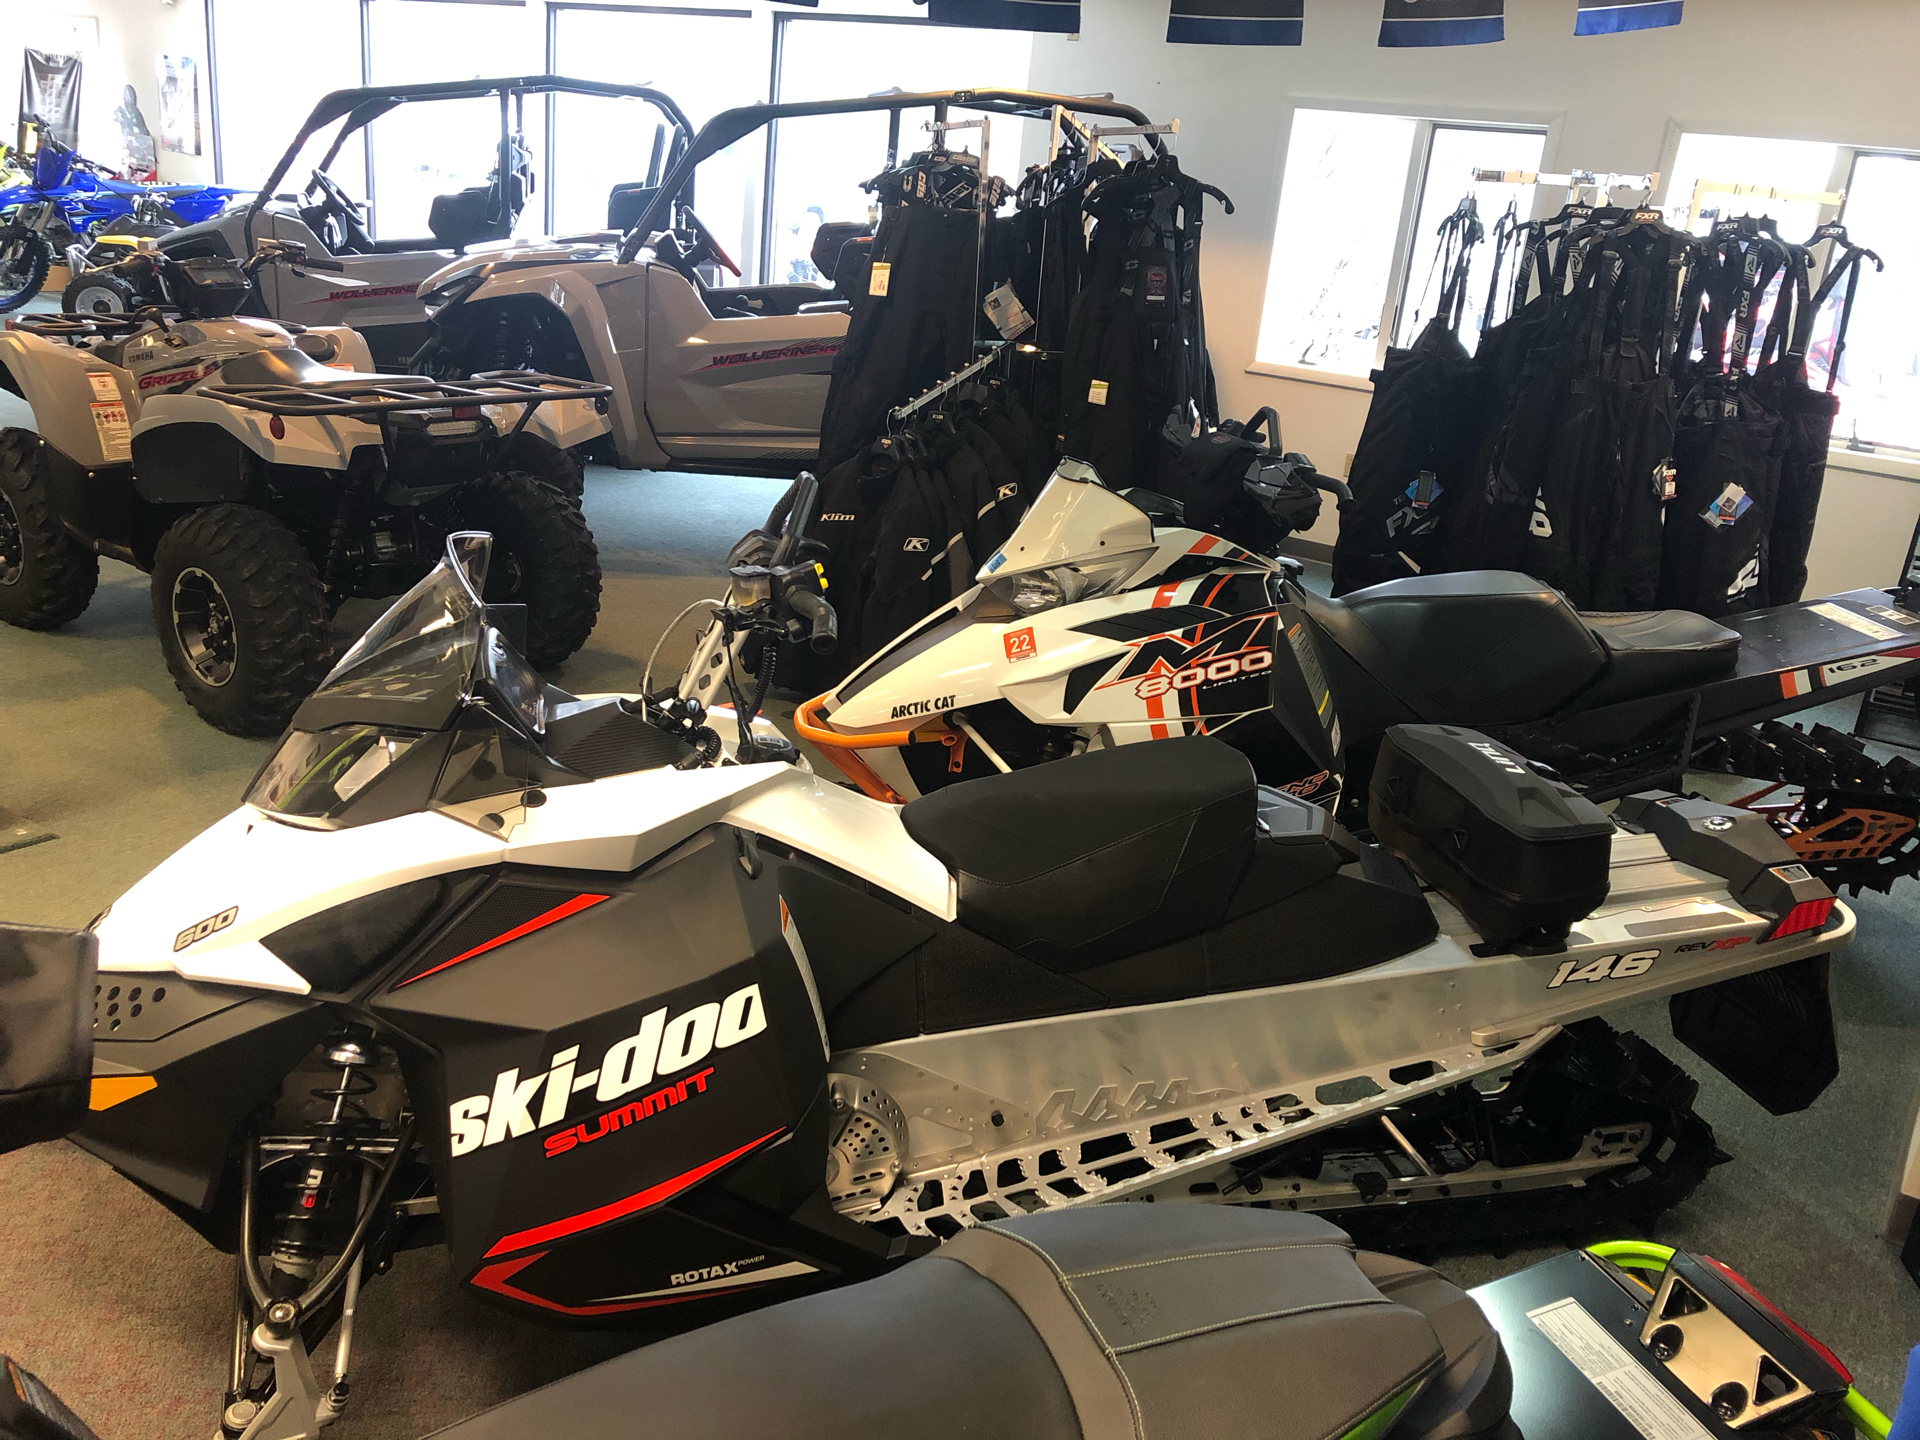 2020 Ski-Doo Summit Sport 600 Carb in Escanaba, Michigan - Photo 2